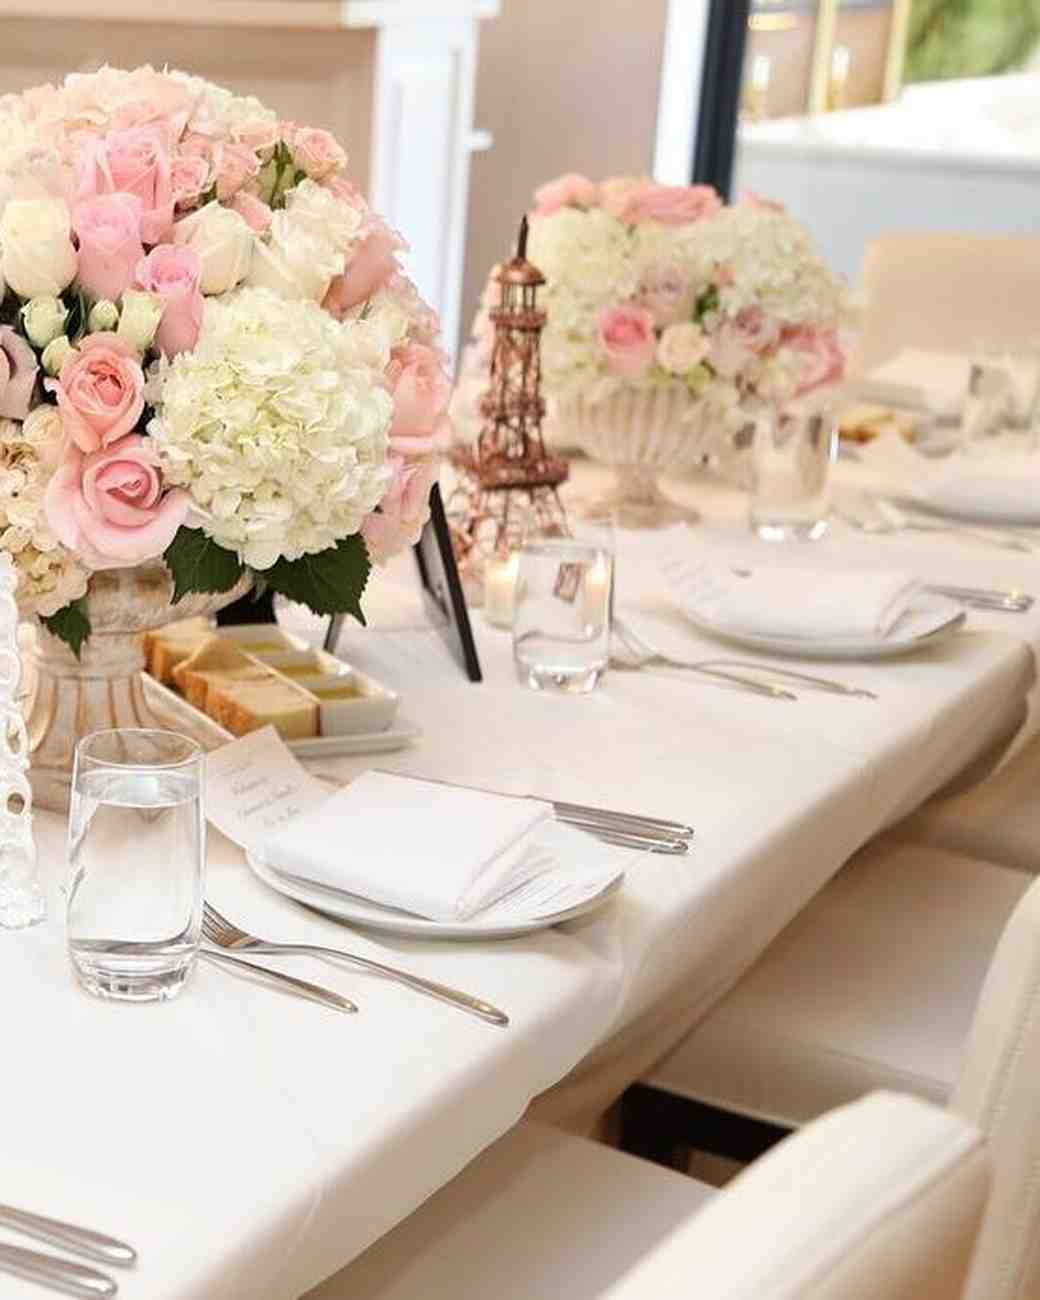 Adrienne Bailon's Wedding Shower Table Arrangements